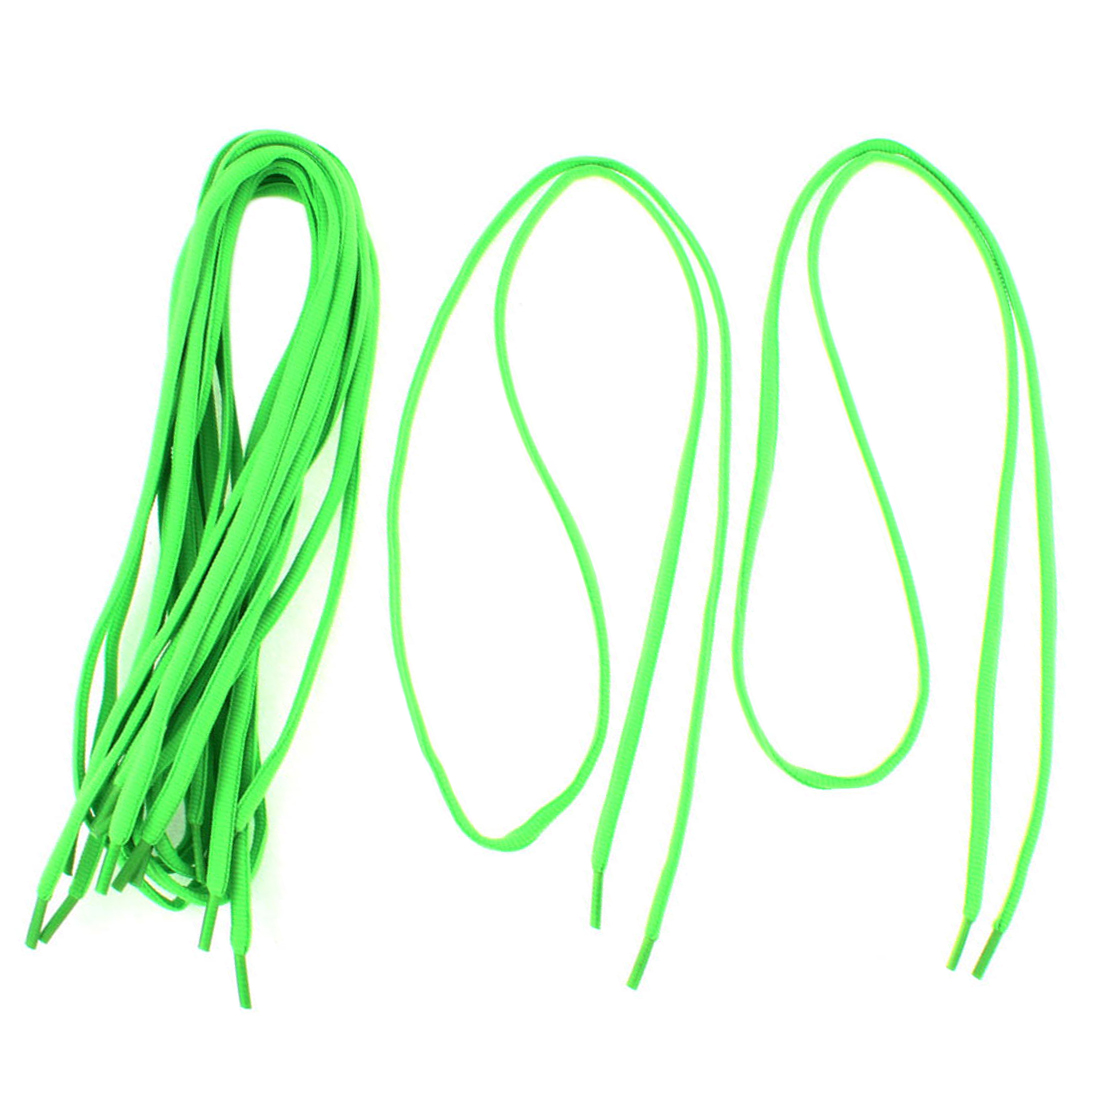 "Athletic Sports Sneaker Shoe Laces String Green 43"" Length 4 Pairs"